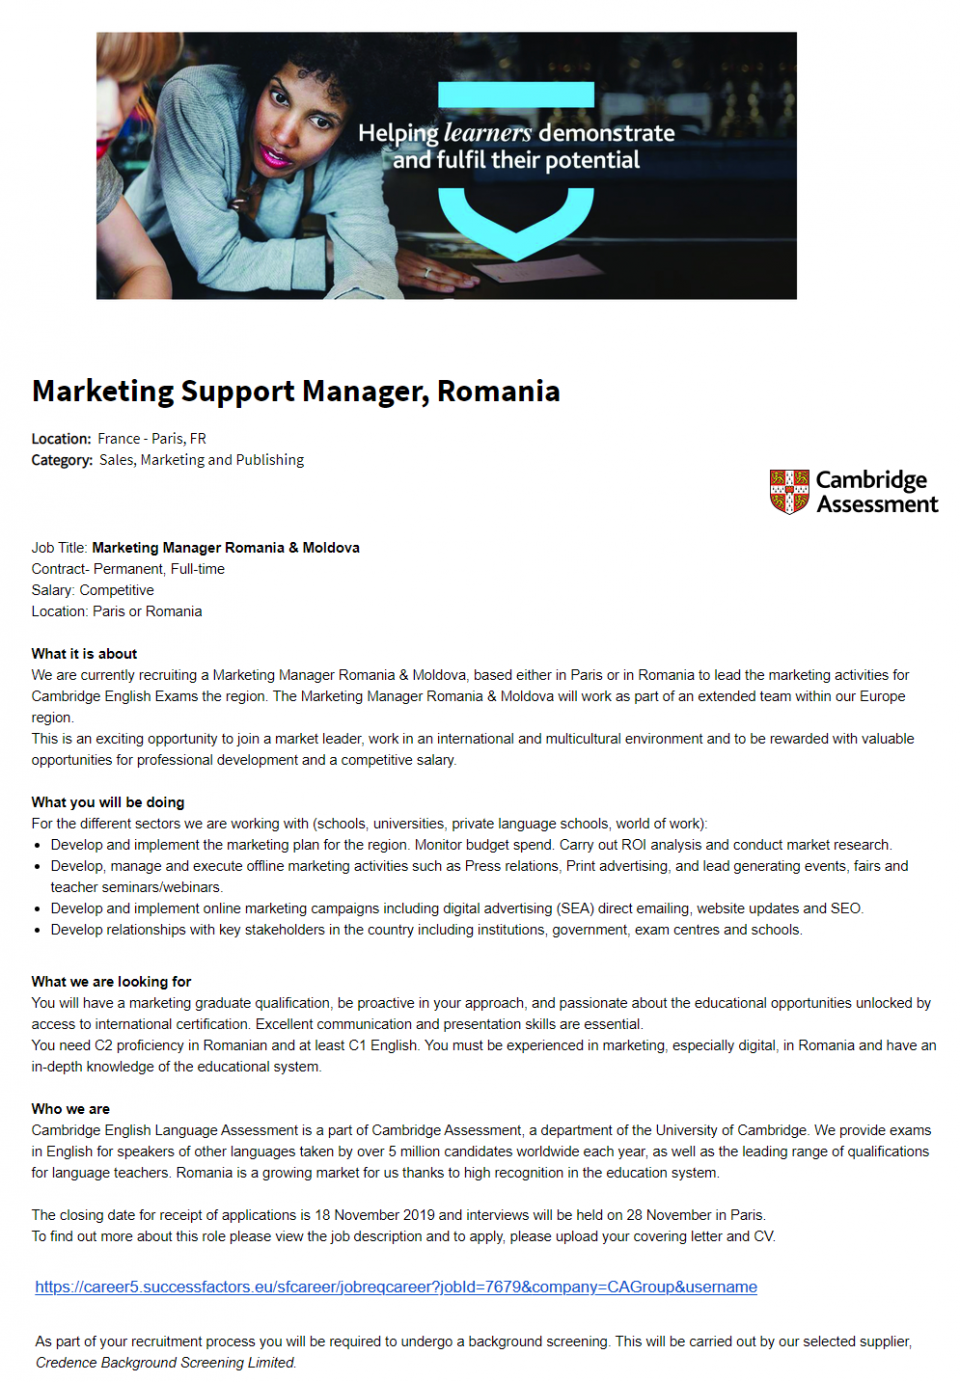 Marketing Manager Romania & Moldova